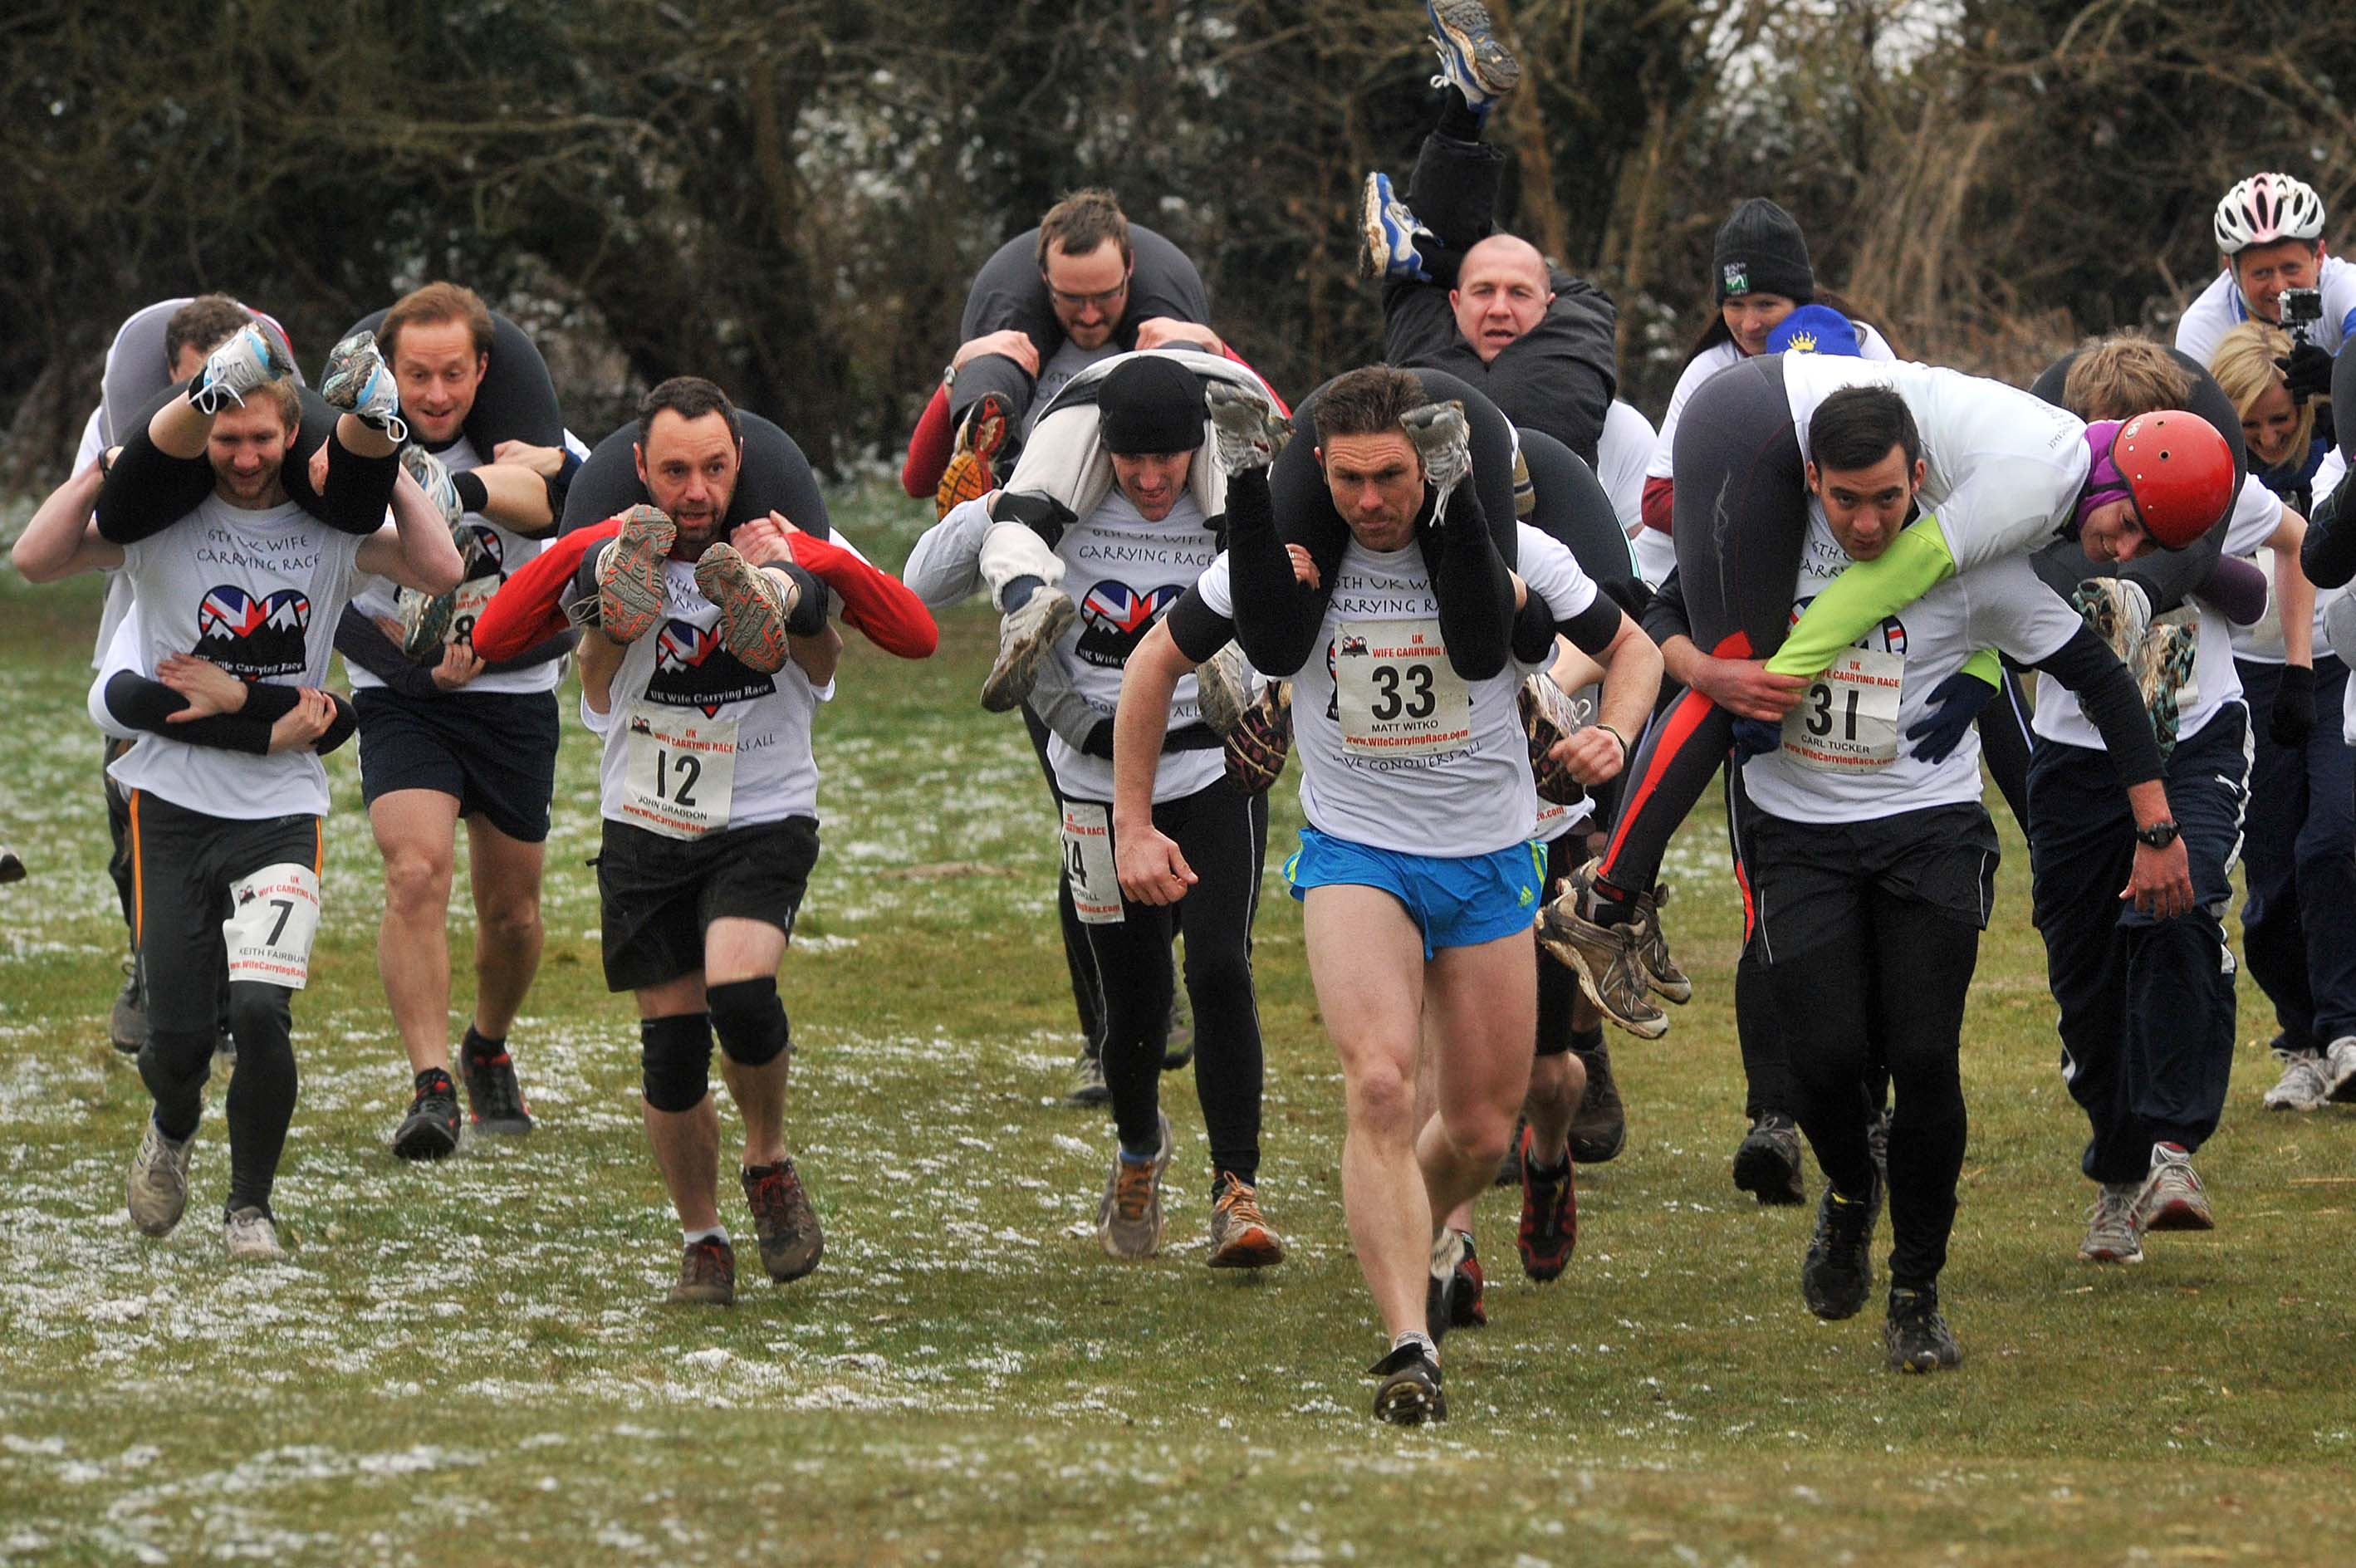 World's quirkiest events wife carrying championships